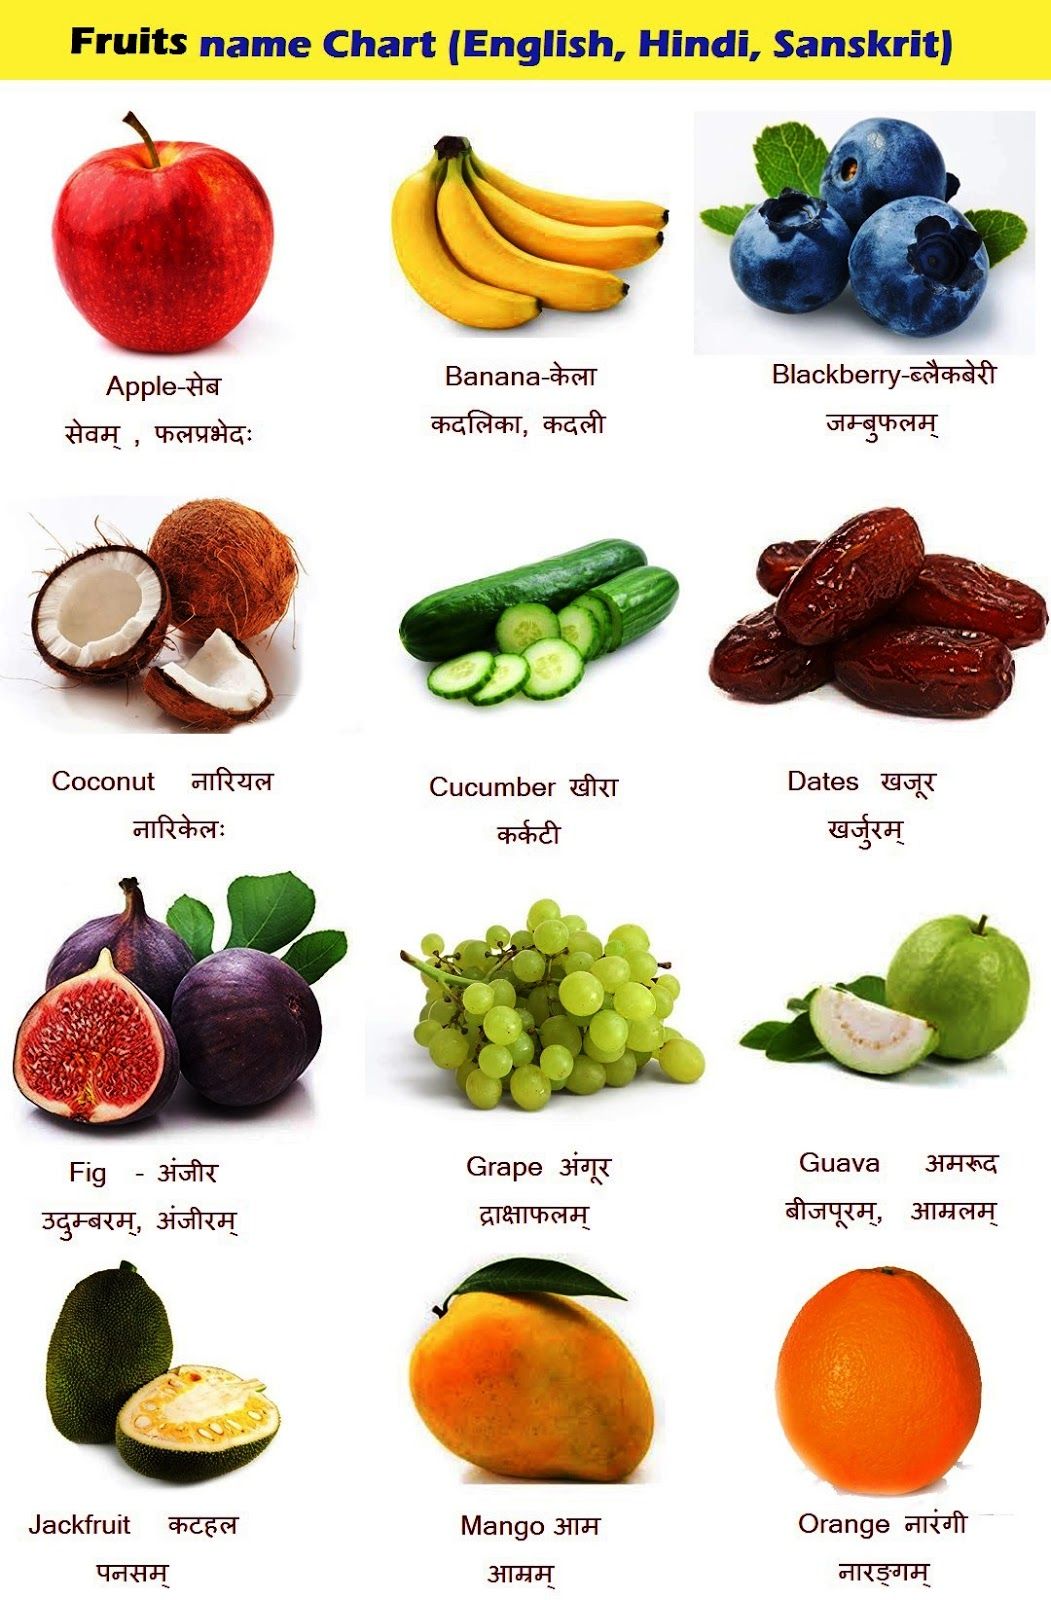 Fruits name in Hindi (falon ke naam), Sanskrit and English